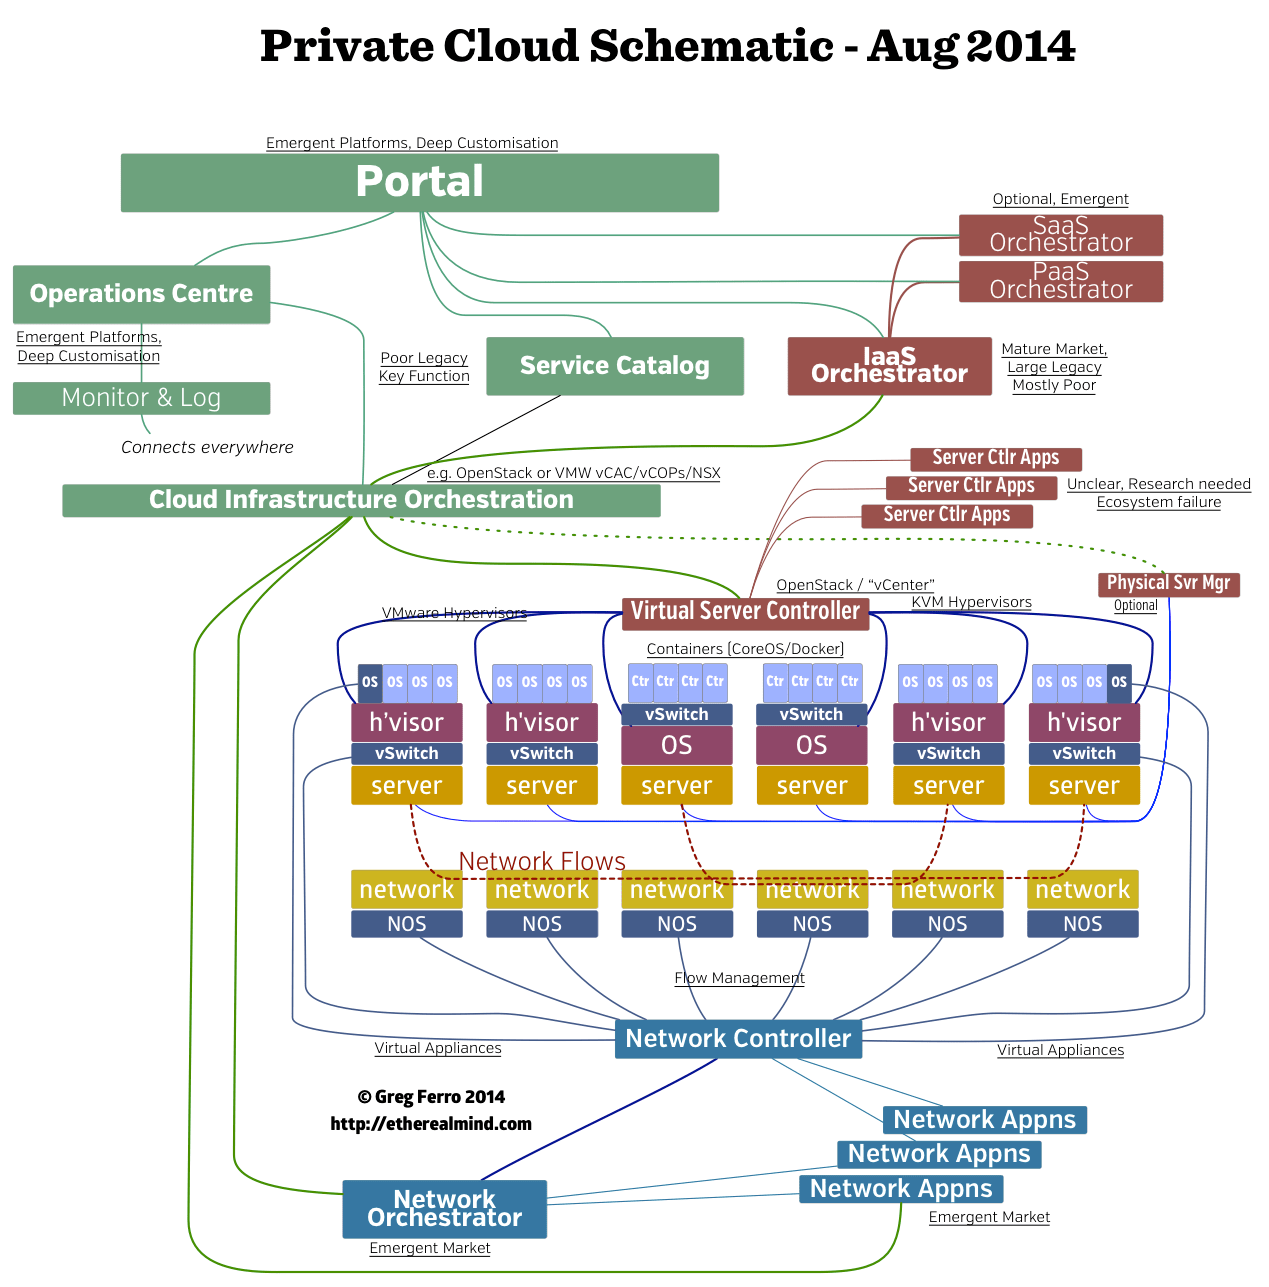 hight resolution of my private cloud block architecture diagram etherealmind etherealmind s private cloud block diagram august 2014 click